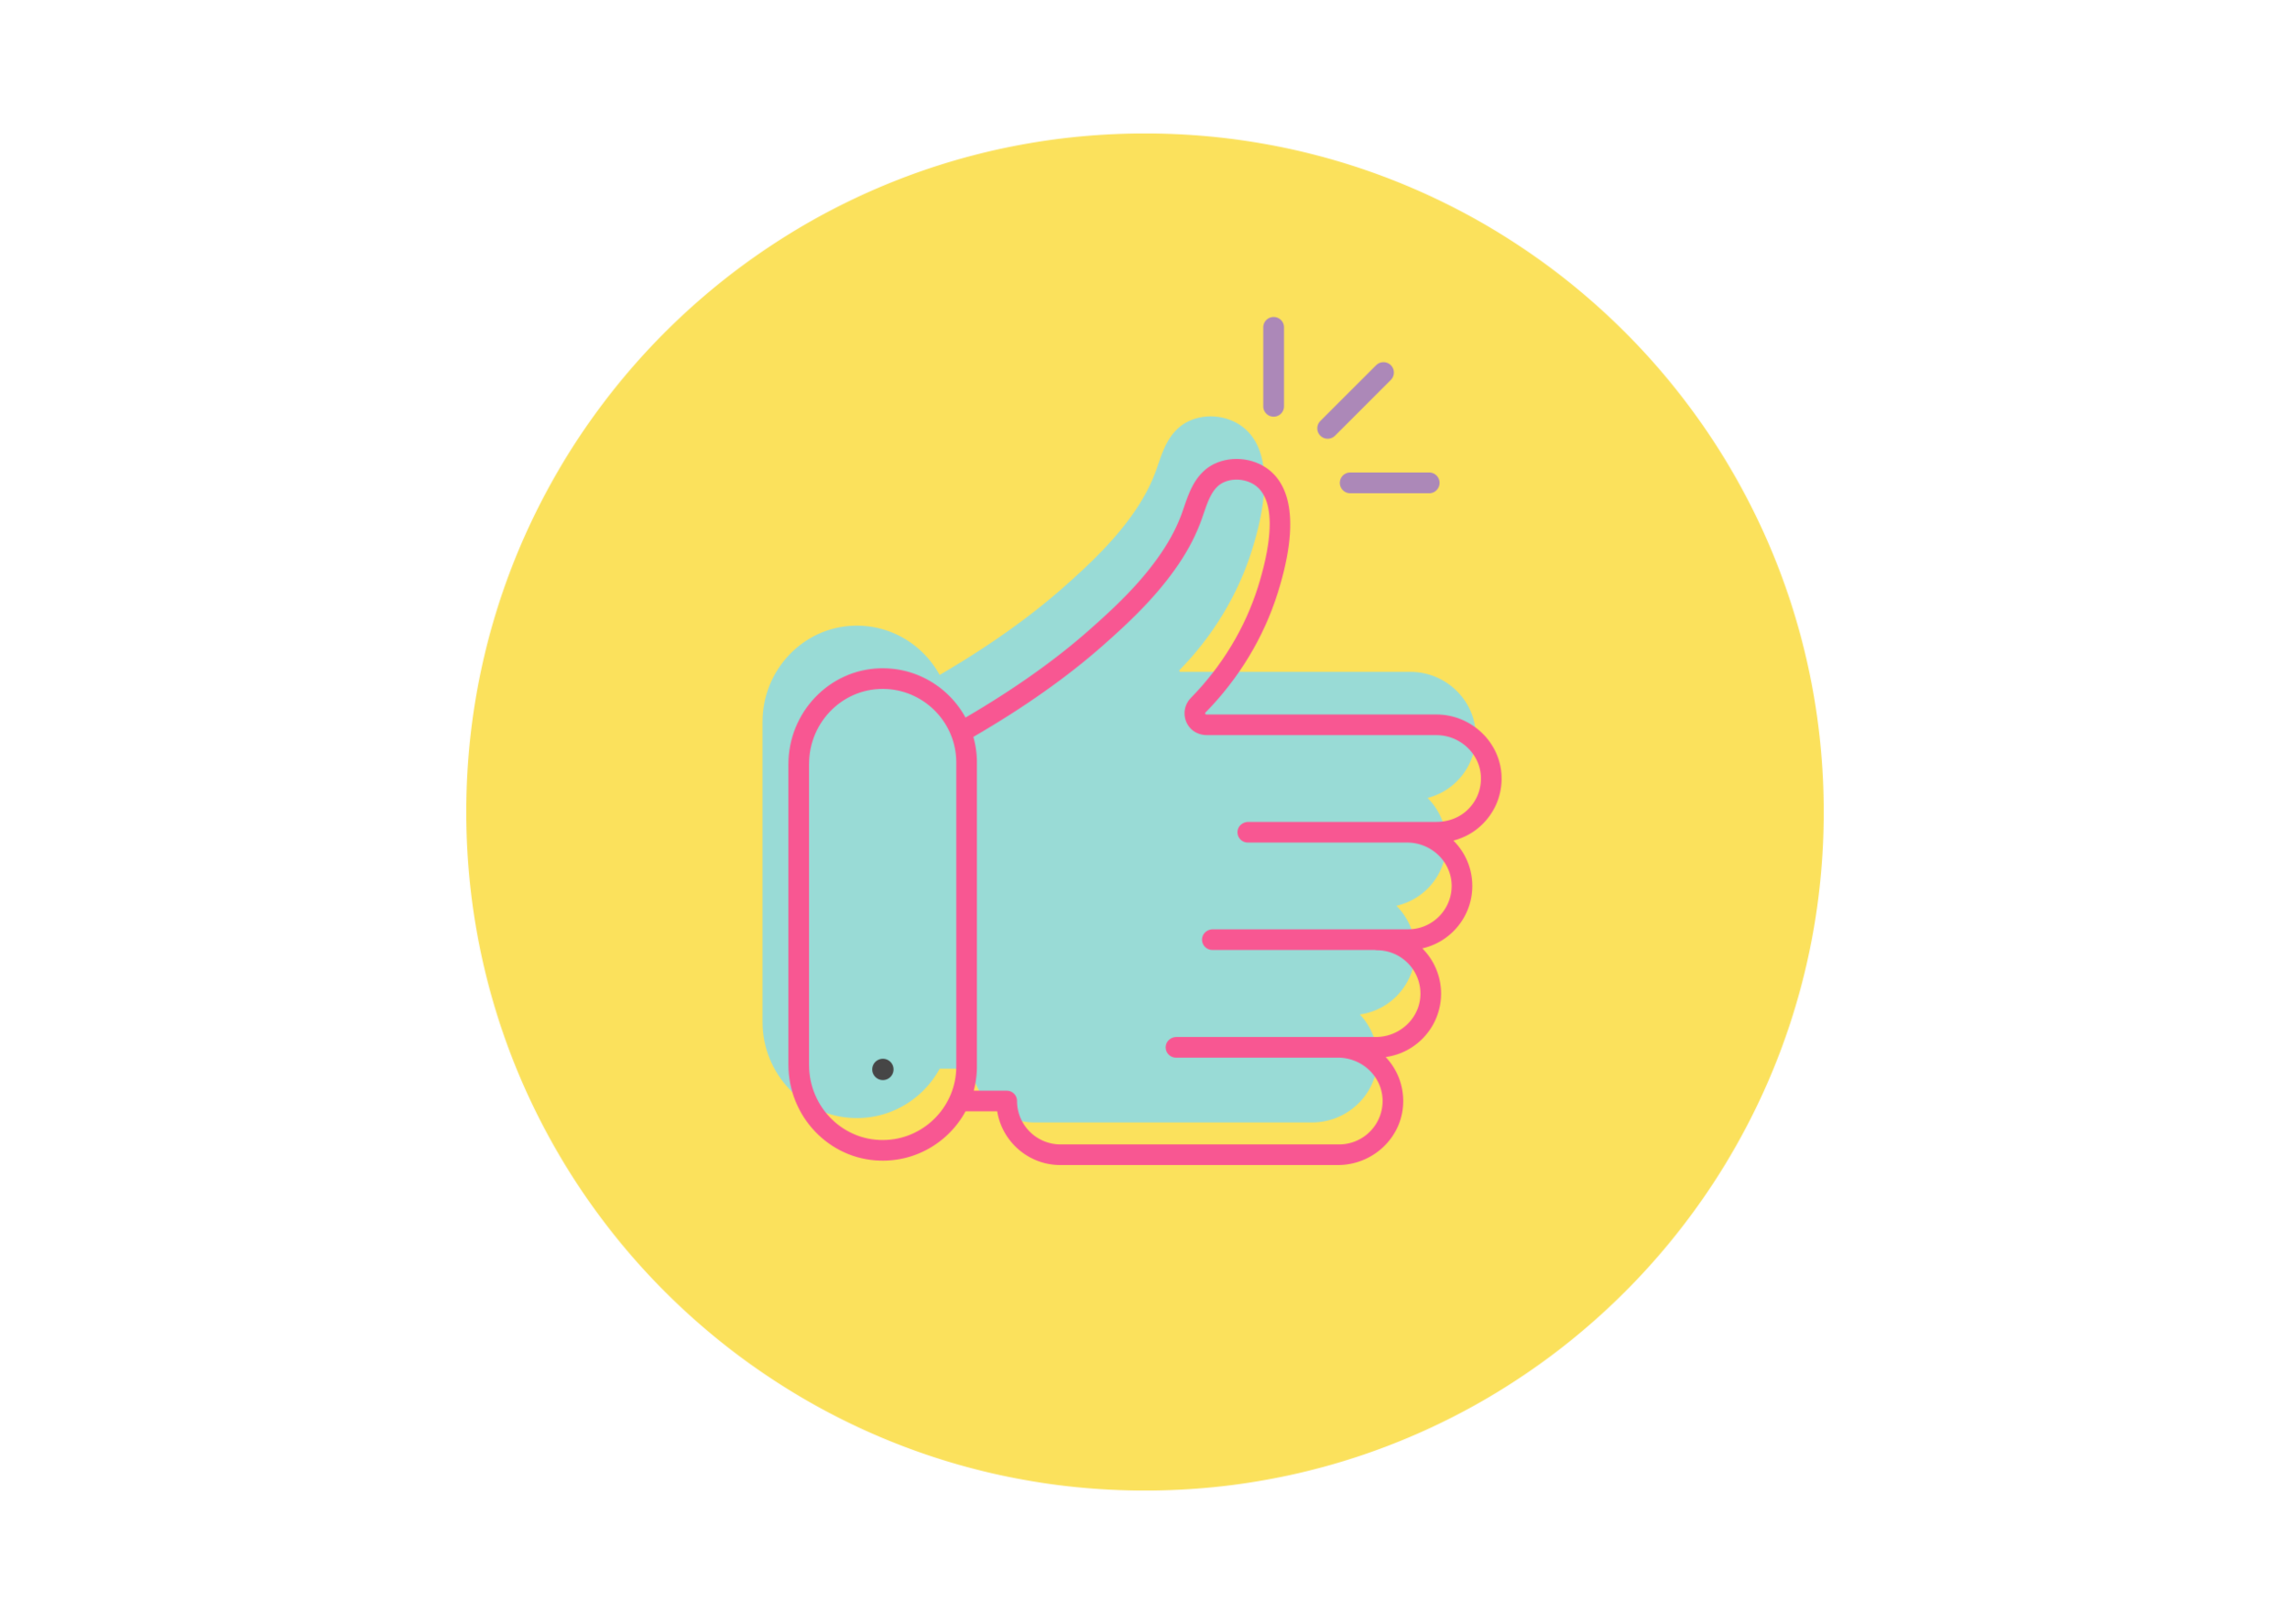 Thumbs up icon for qualified and vetted caregiver jobs working with special needs